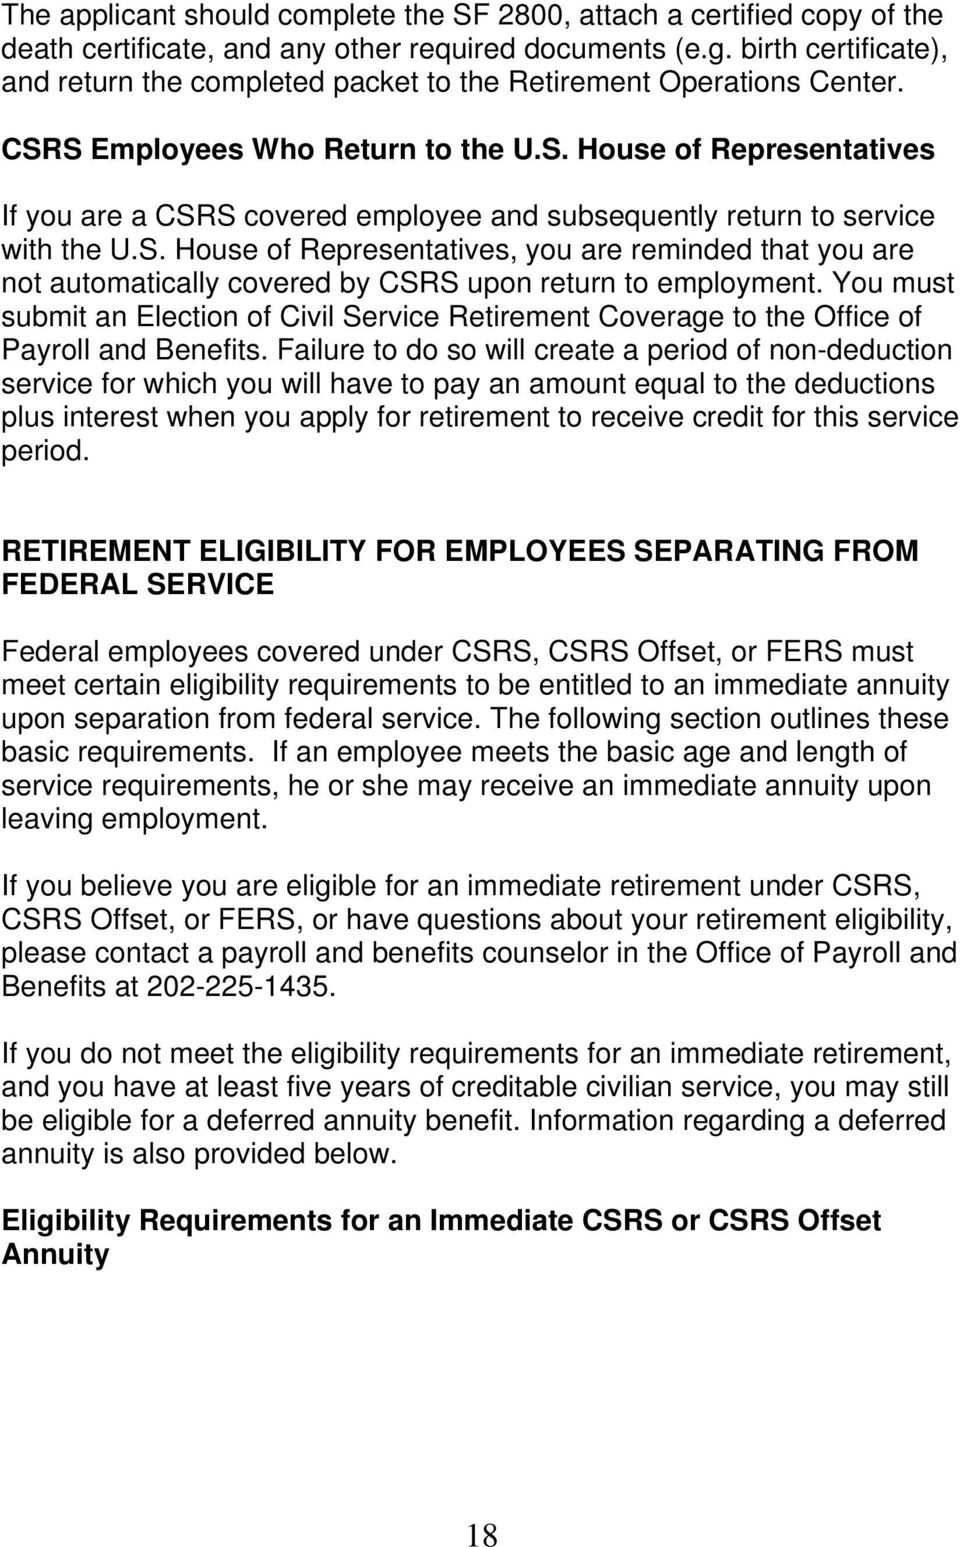 S. House of Representatives, you are reminded that you are not automatically covered by CSRS upon return to employment.